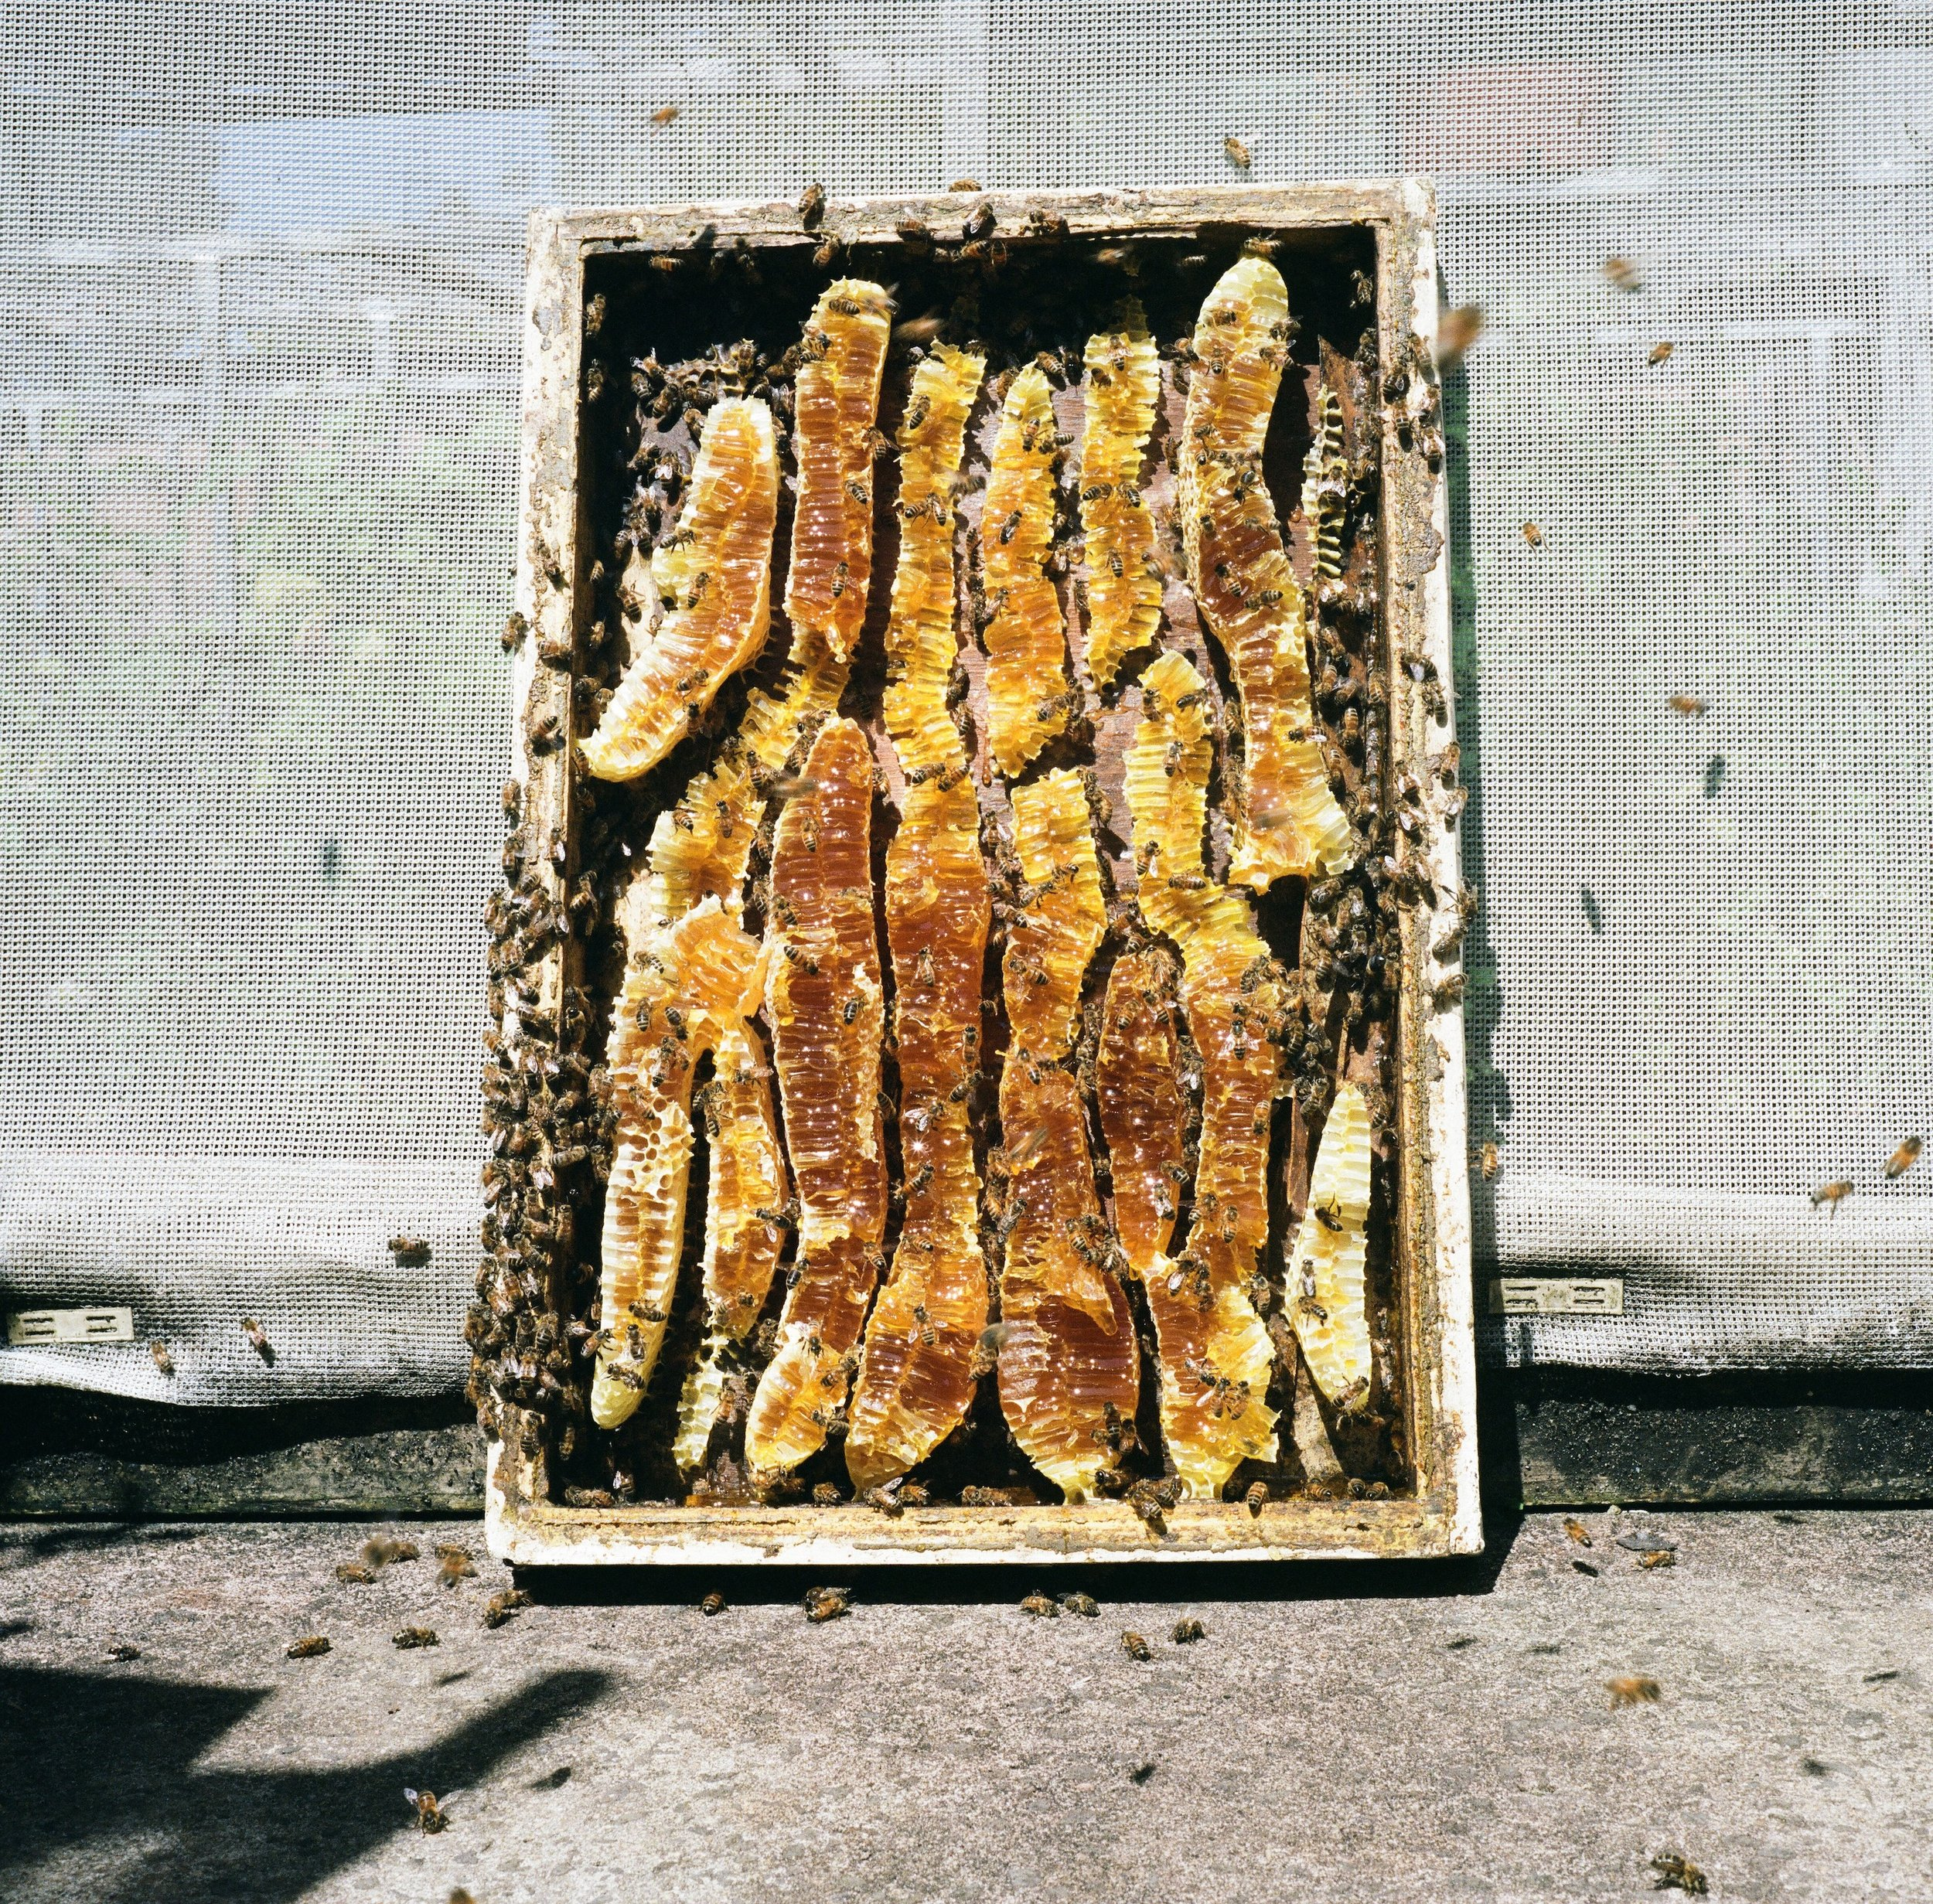 Burr comb on the underside of a hive lid. Burr comb indicates the bees need more room inside the hive. • Photo by Jamie Lozoff